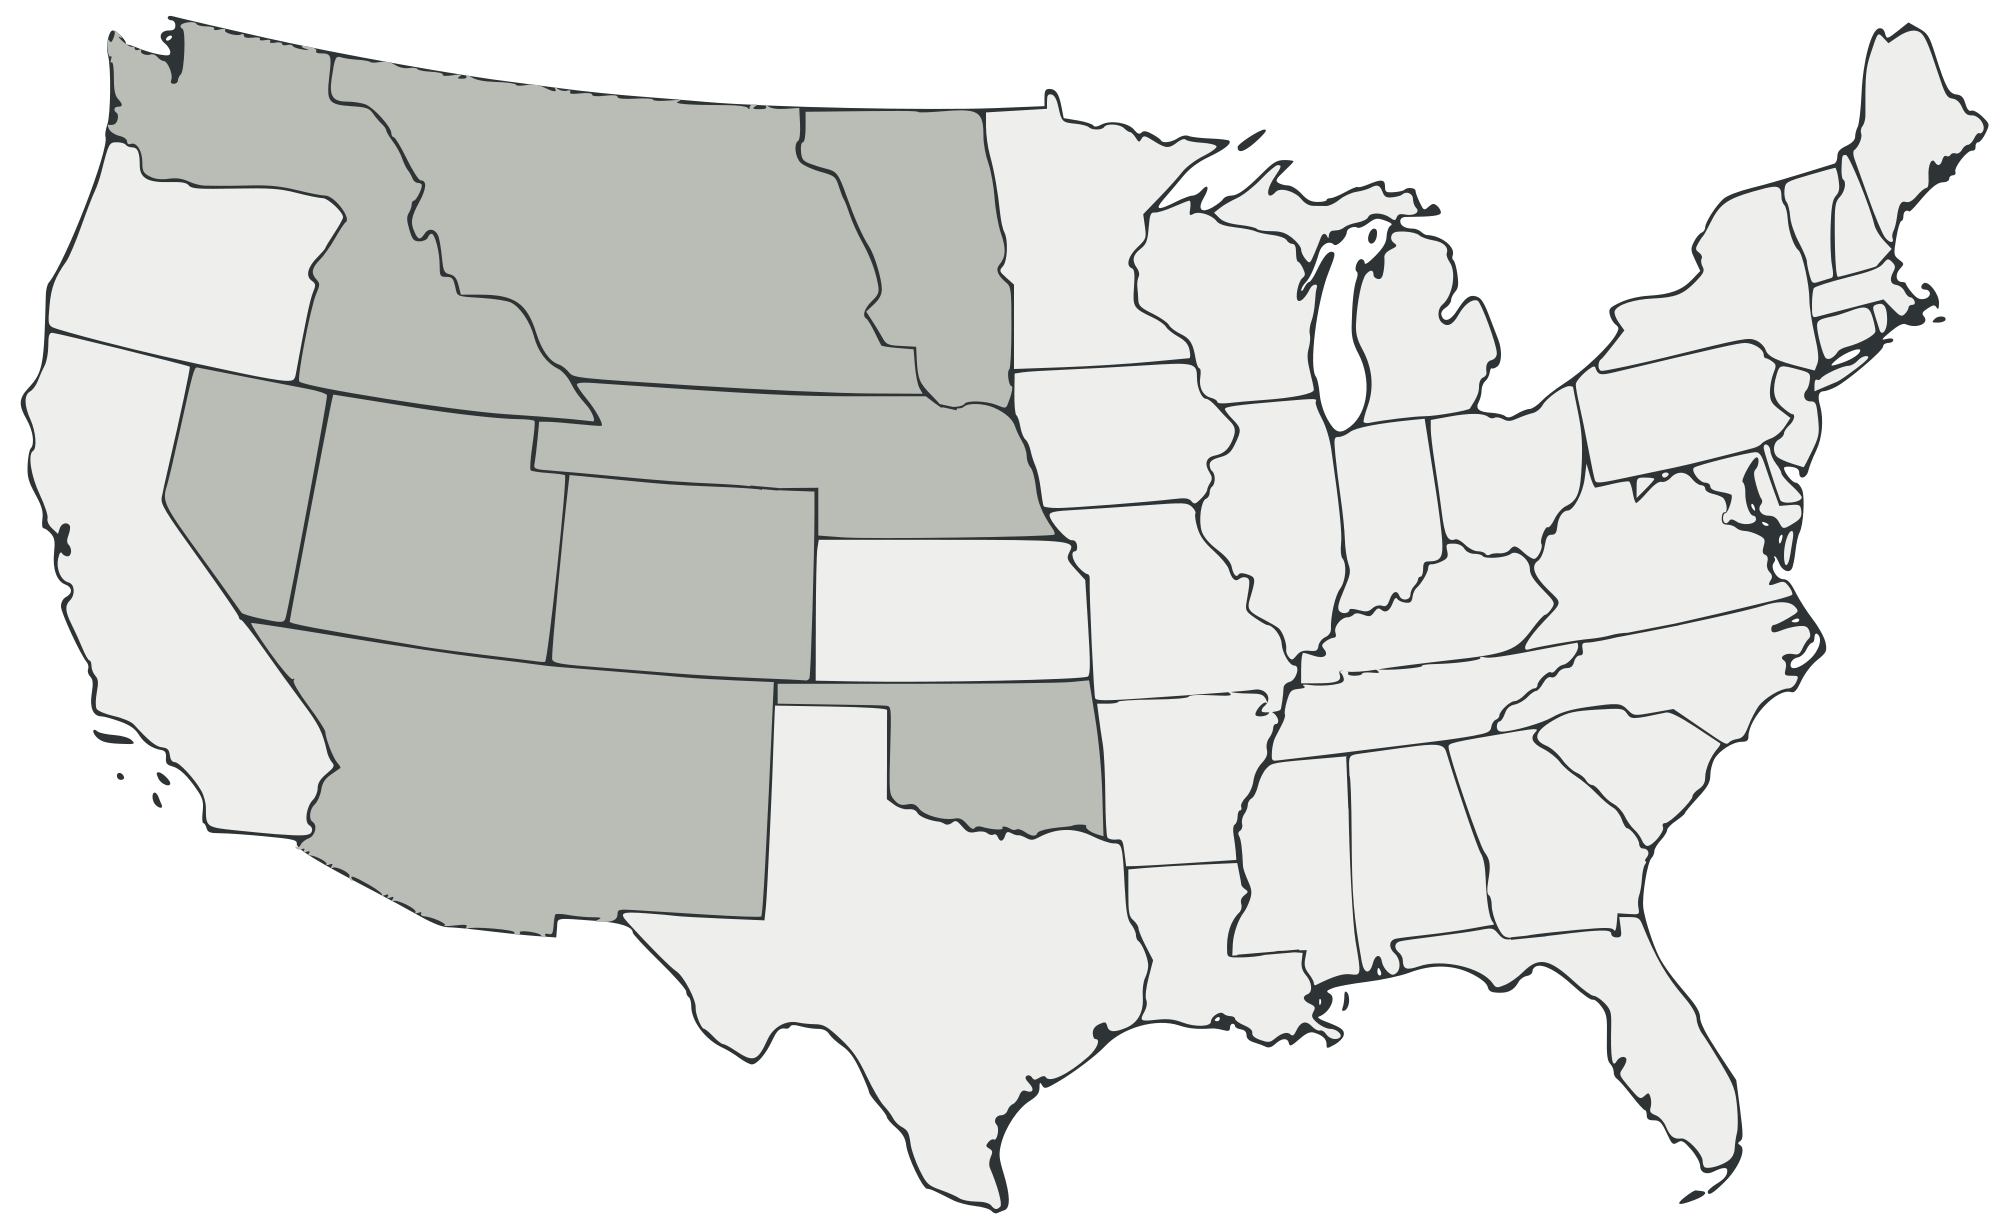 Blank Map Of The United States Transparent Png Clipart Free